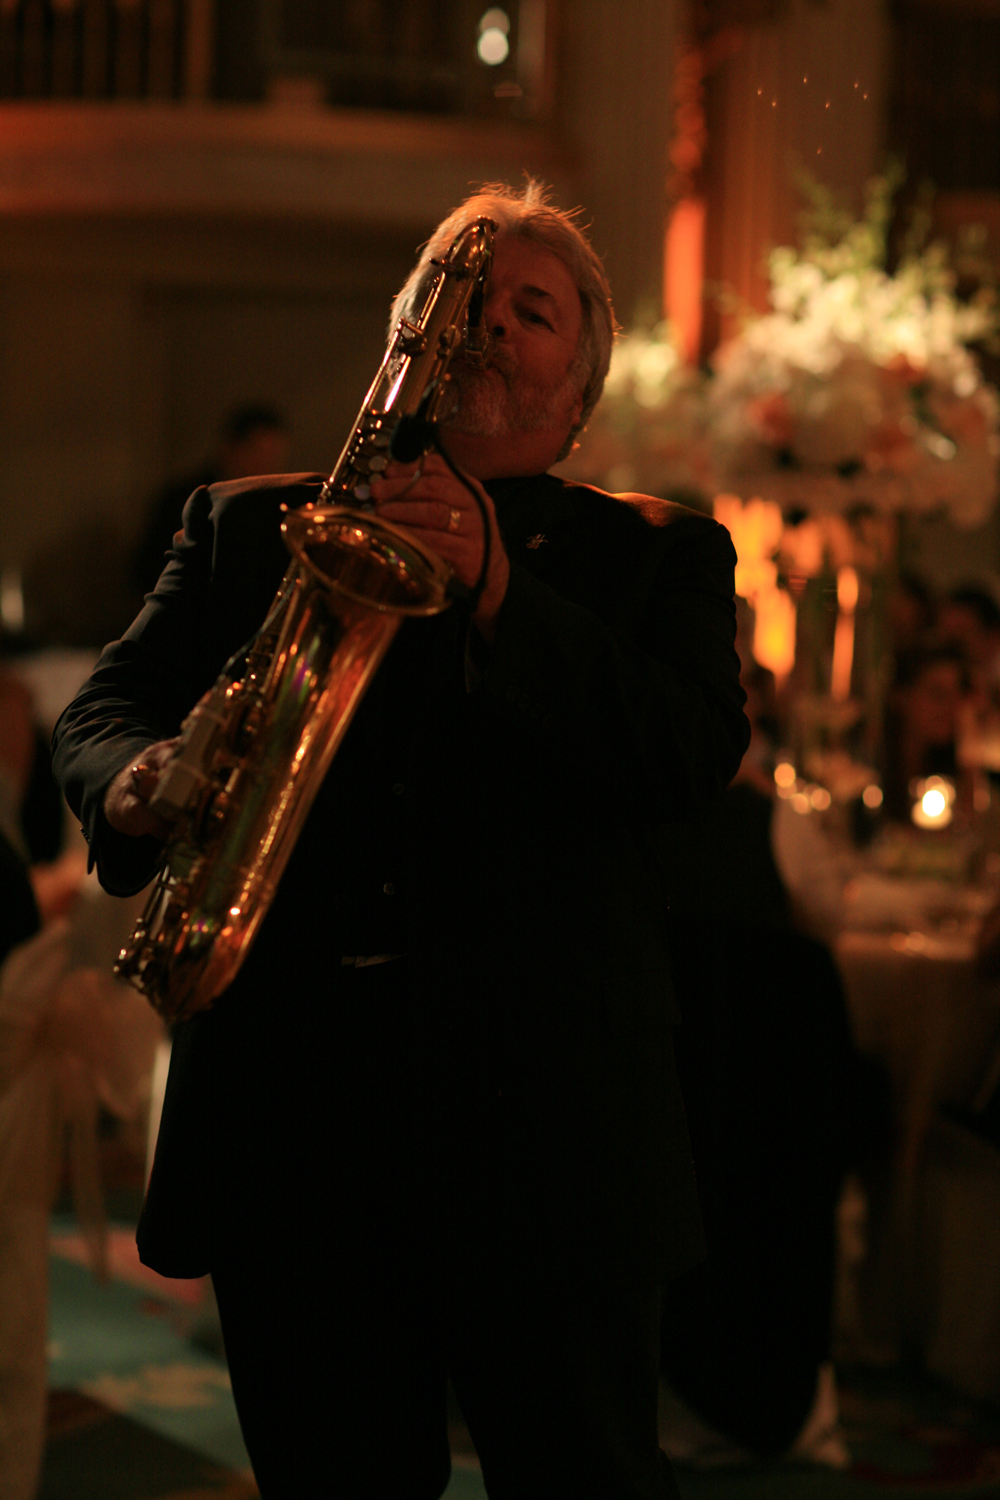 Romantic Sax playing during dinner